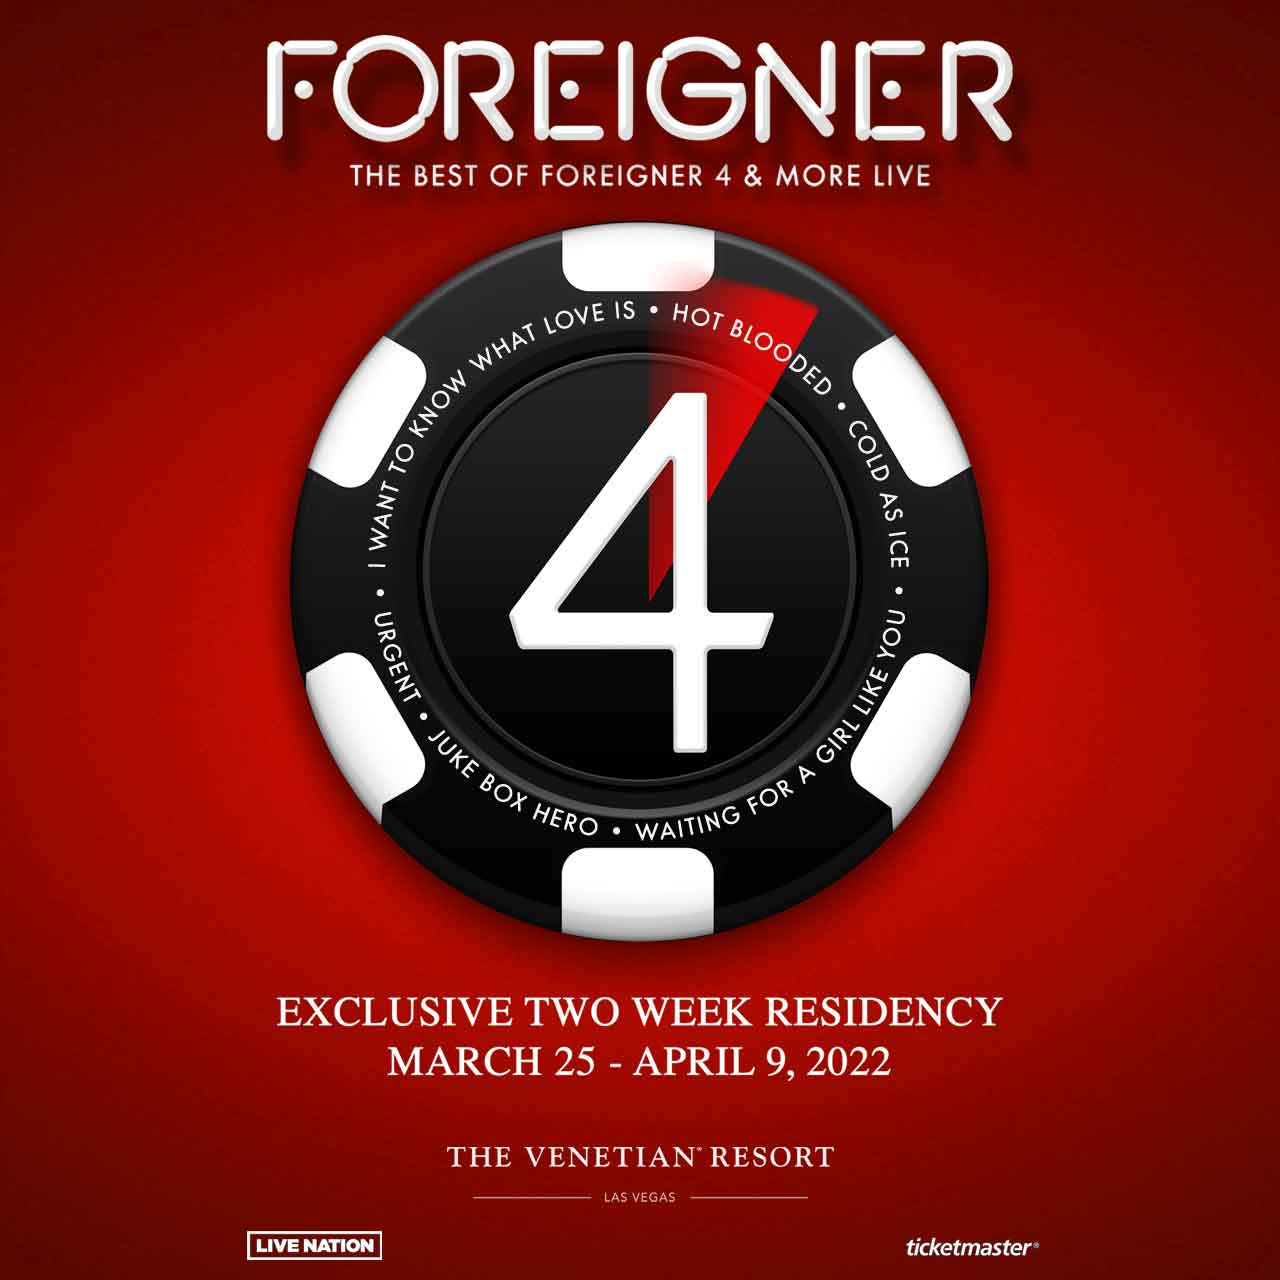 The Best of Foreigner 4 & More Live